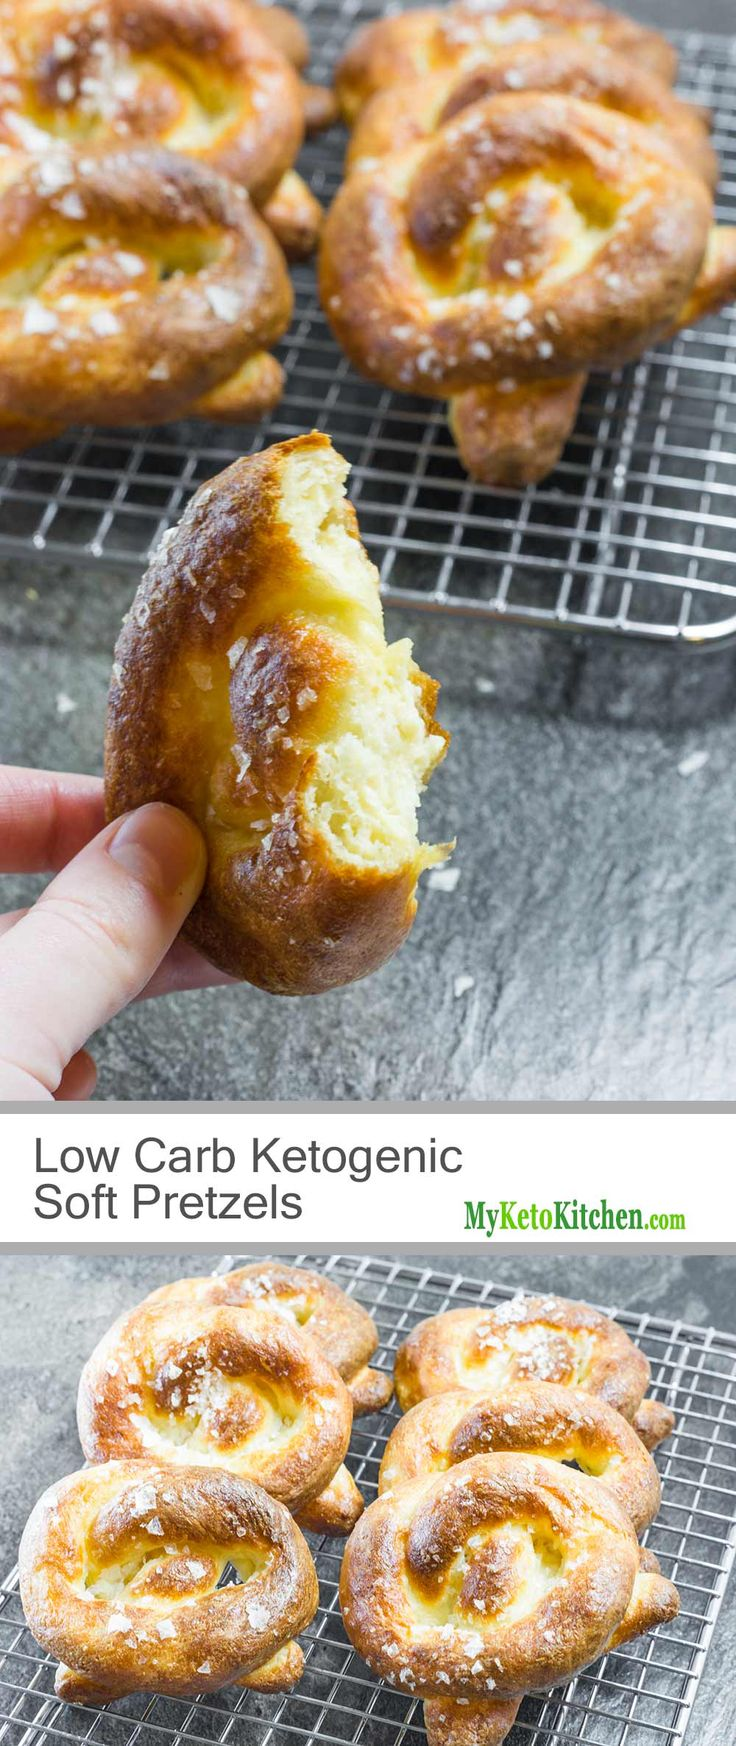 Low Carb Ketogenic Soft Pretzel